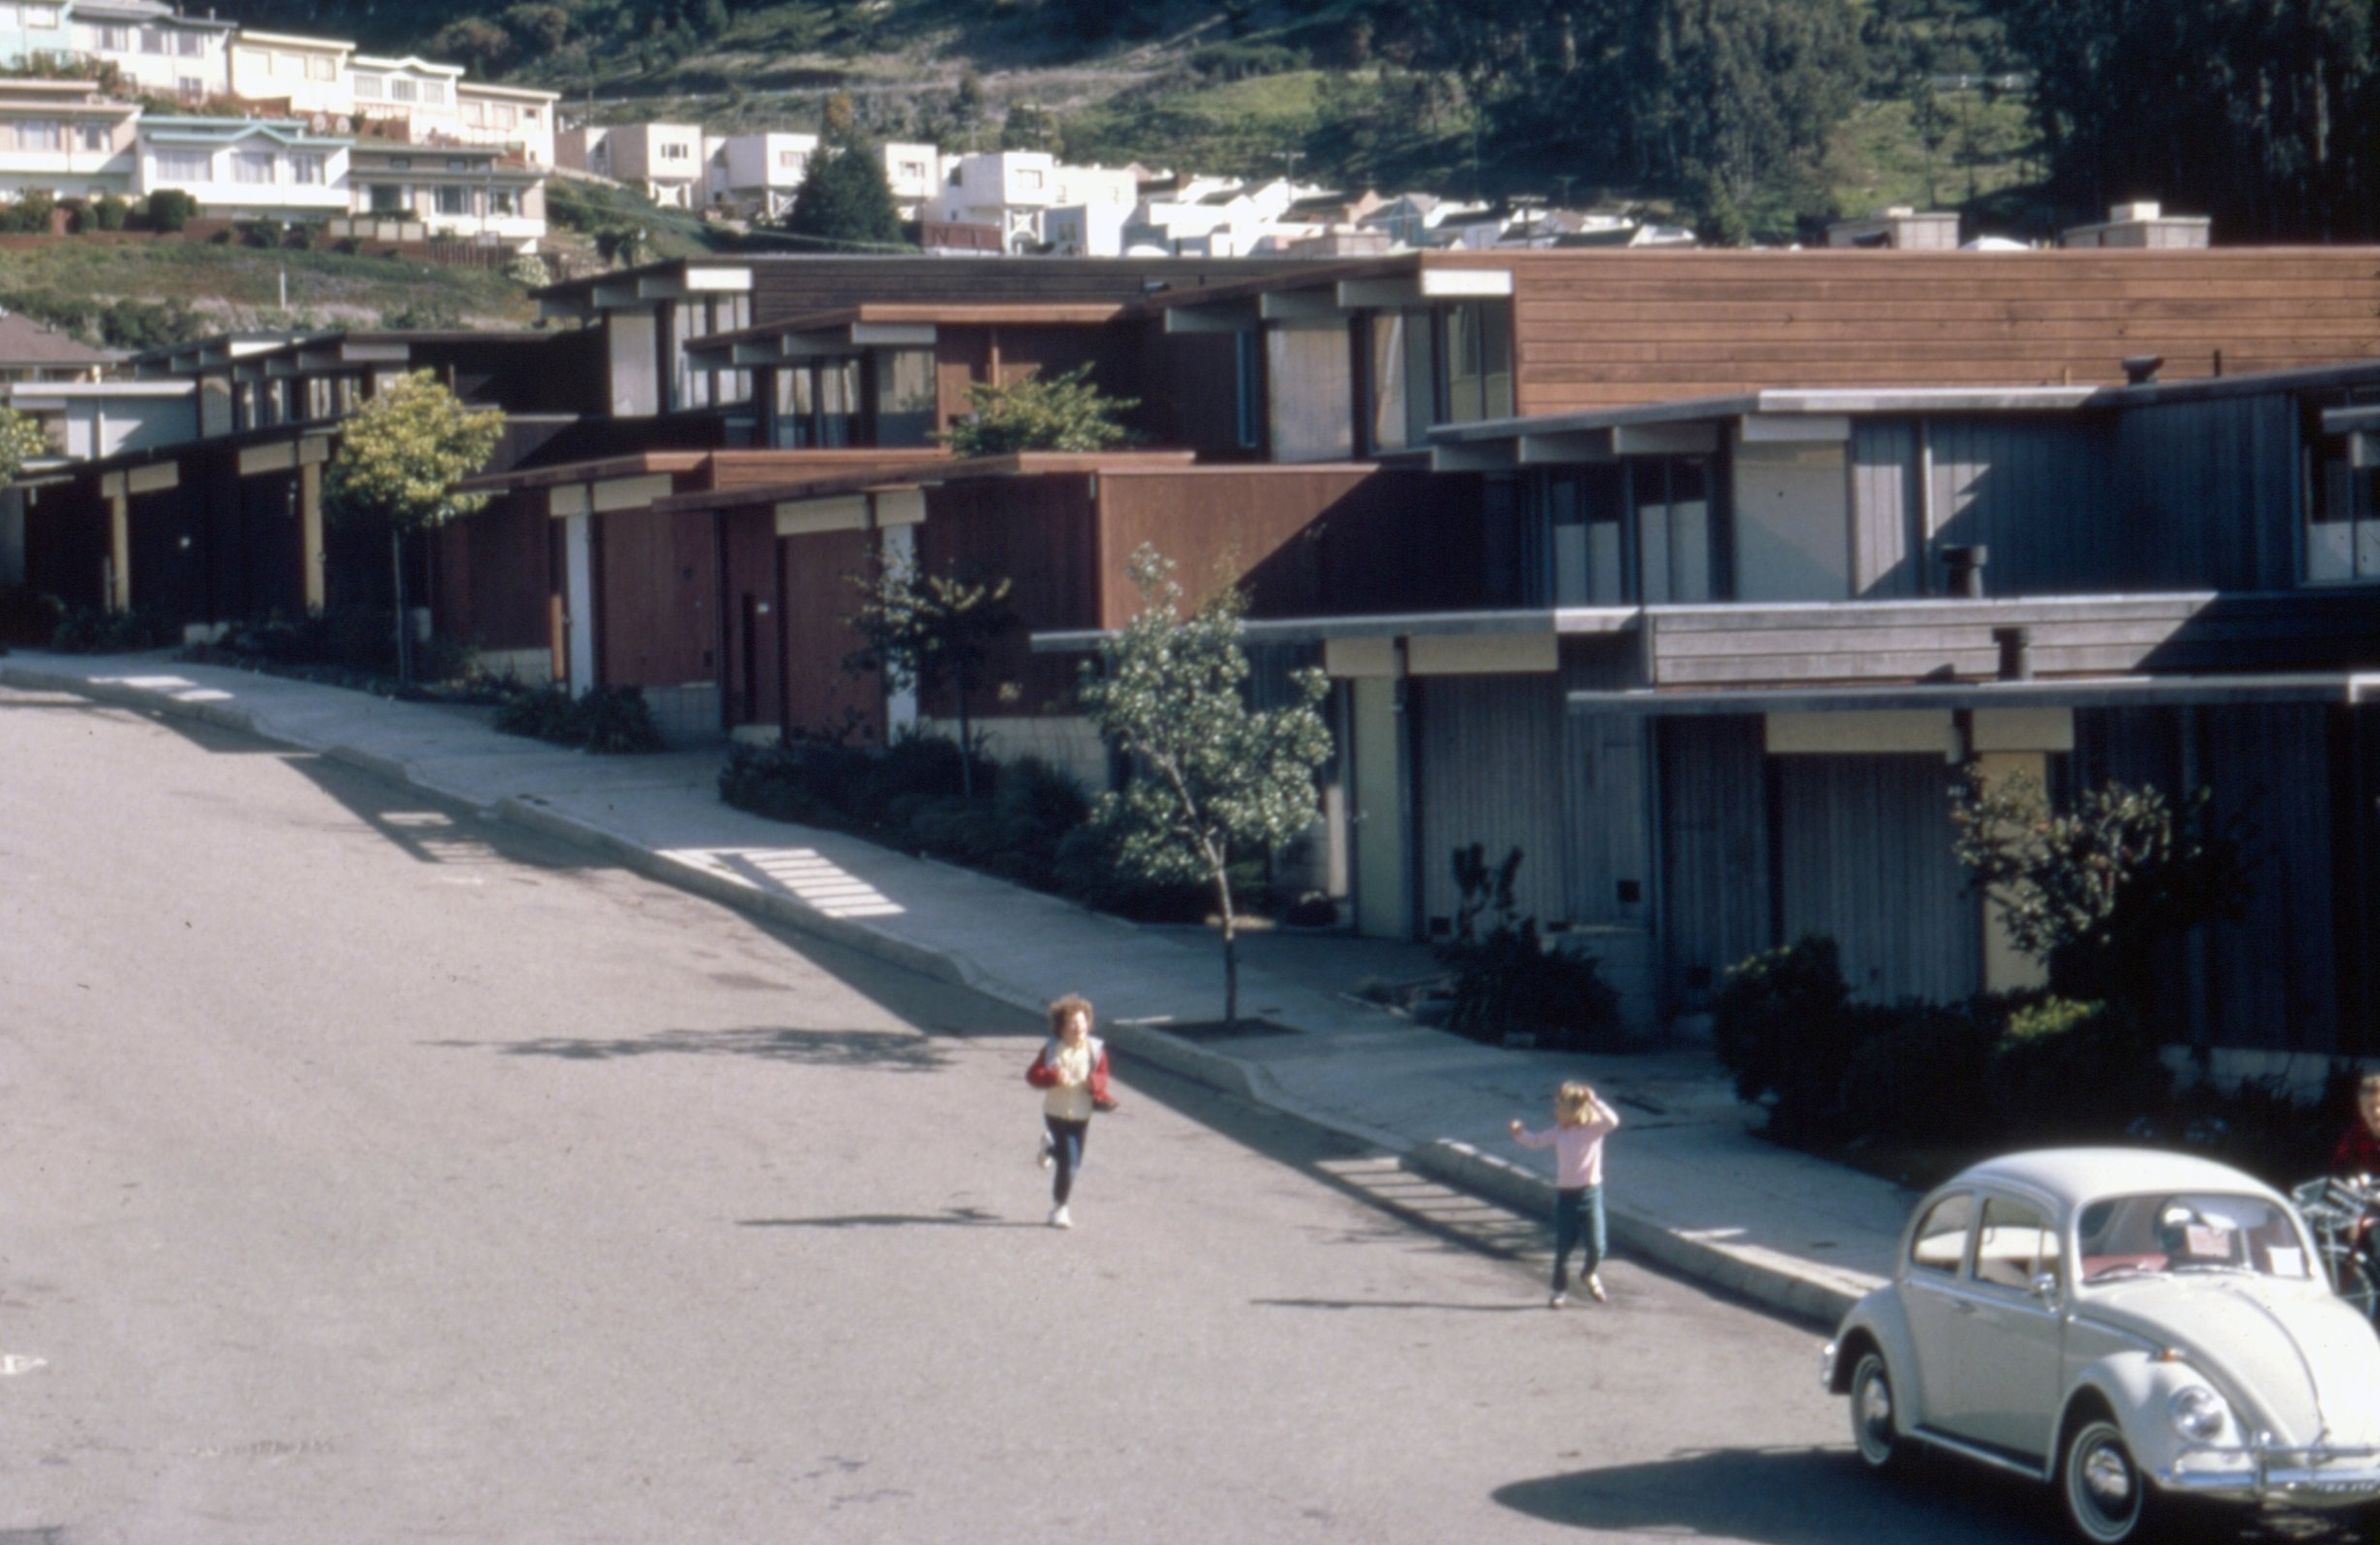 Claude Oakland for Eichler Homes, Inc. on Amber Drive, c. 1965. [San Francisco History Center, San Francisco Public Library]